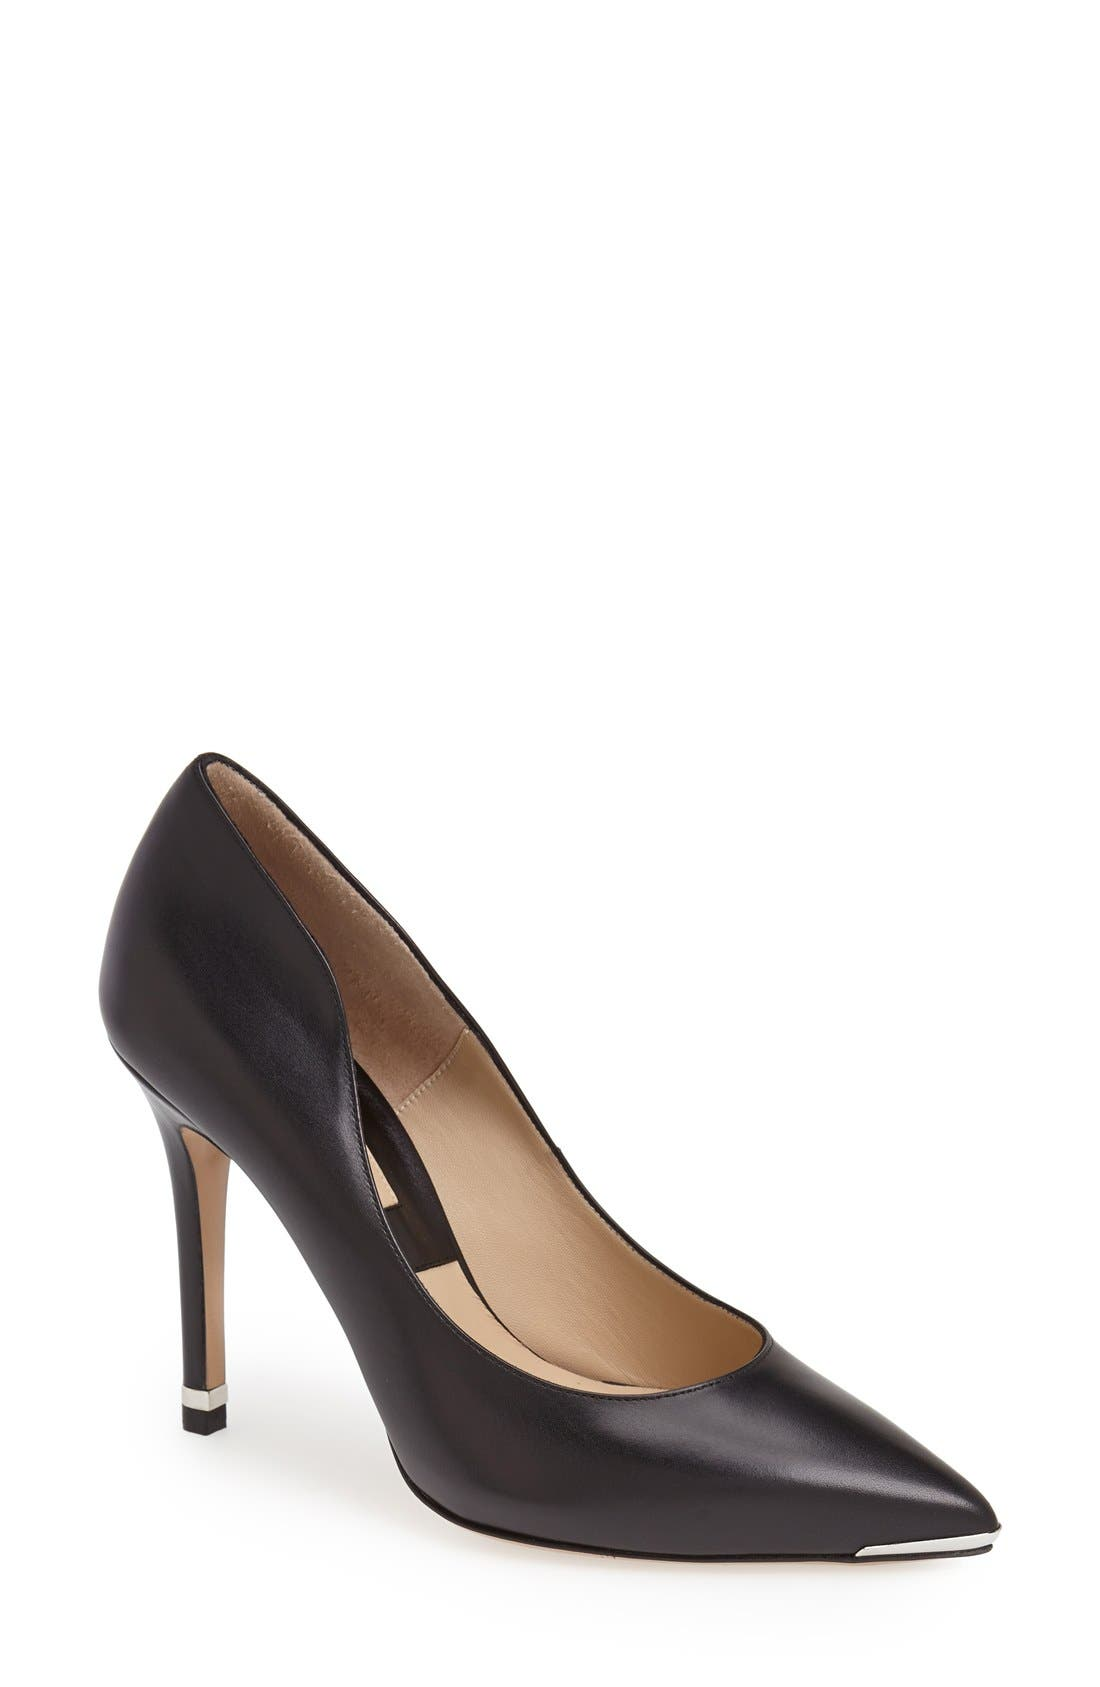 Alternate Image 1 Selected - Michael Kors 'Avra' Pointy Toe Pump (Women)